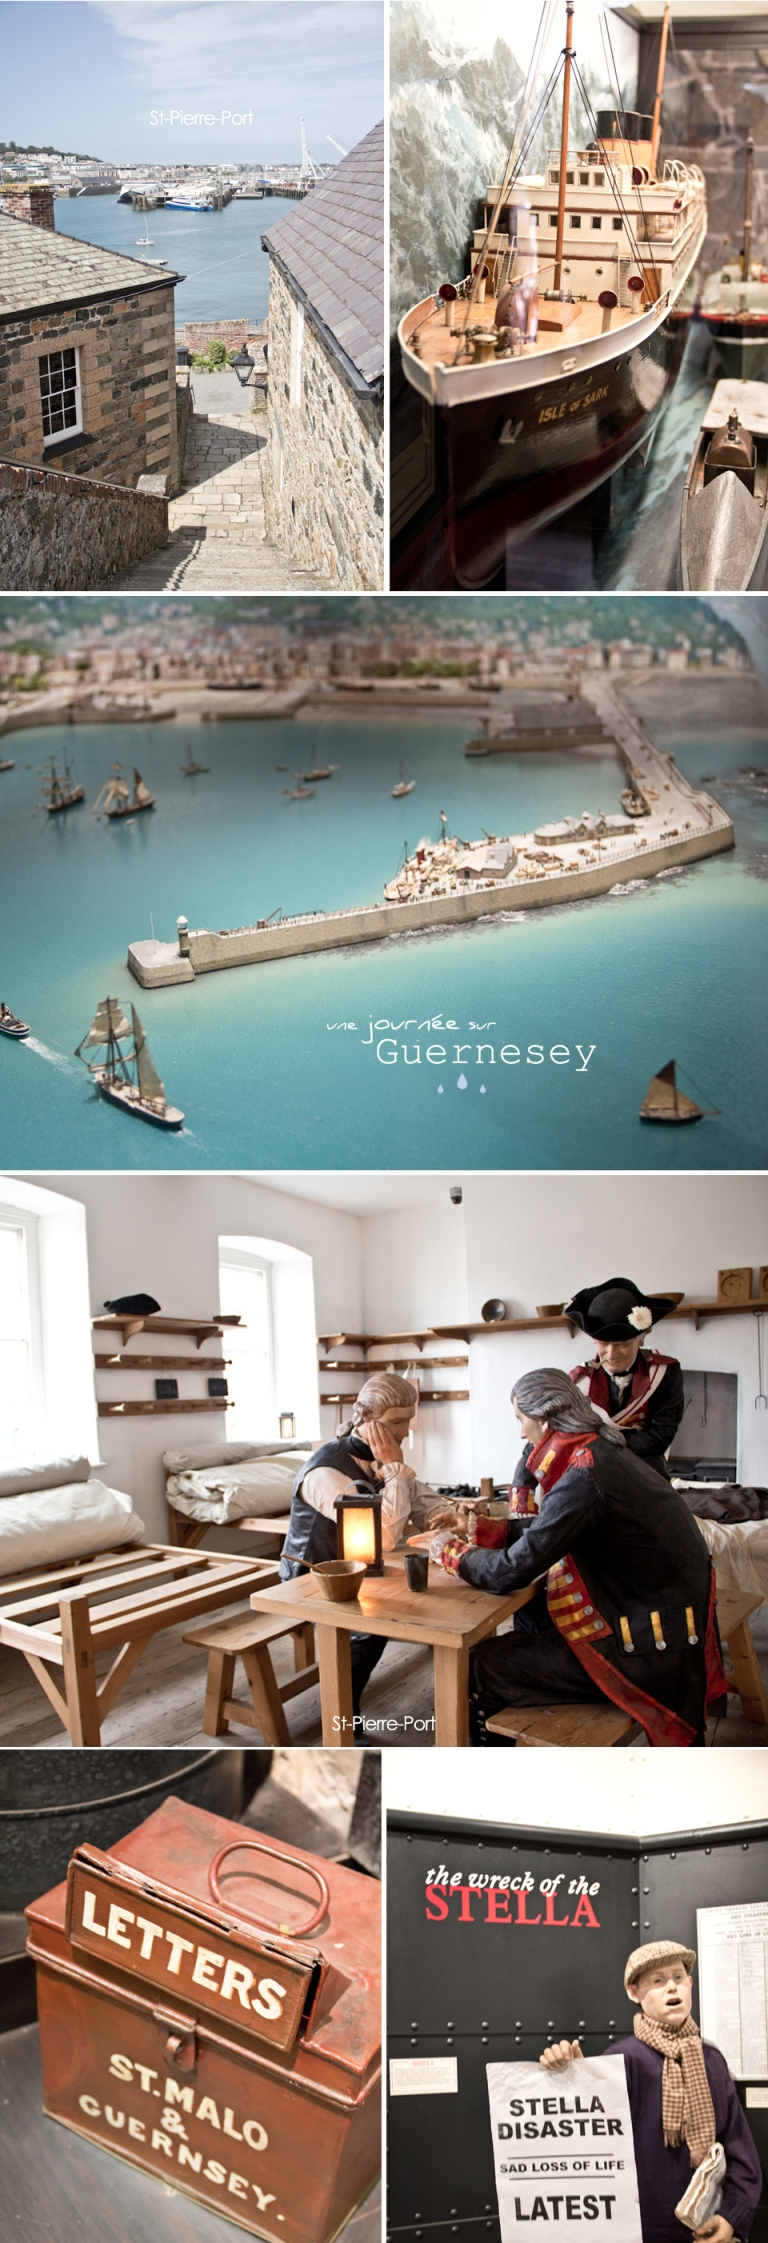 guernesey-04